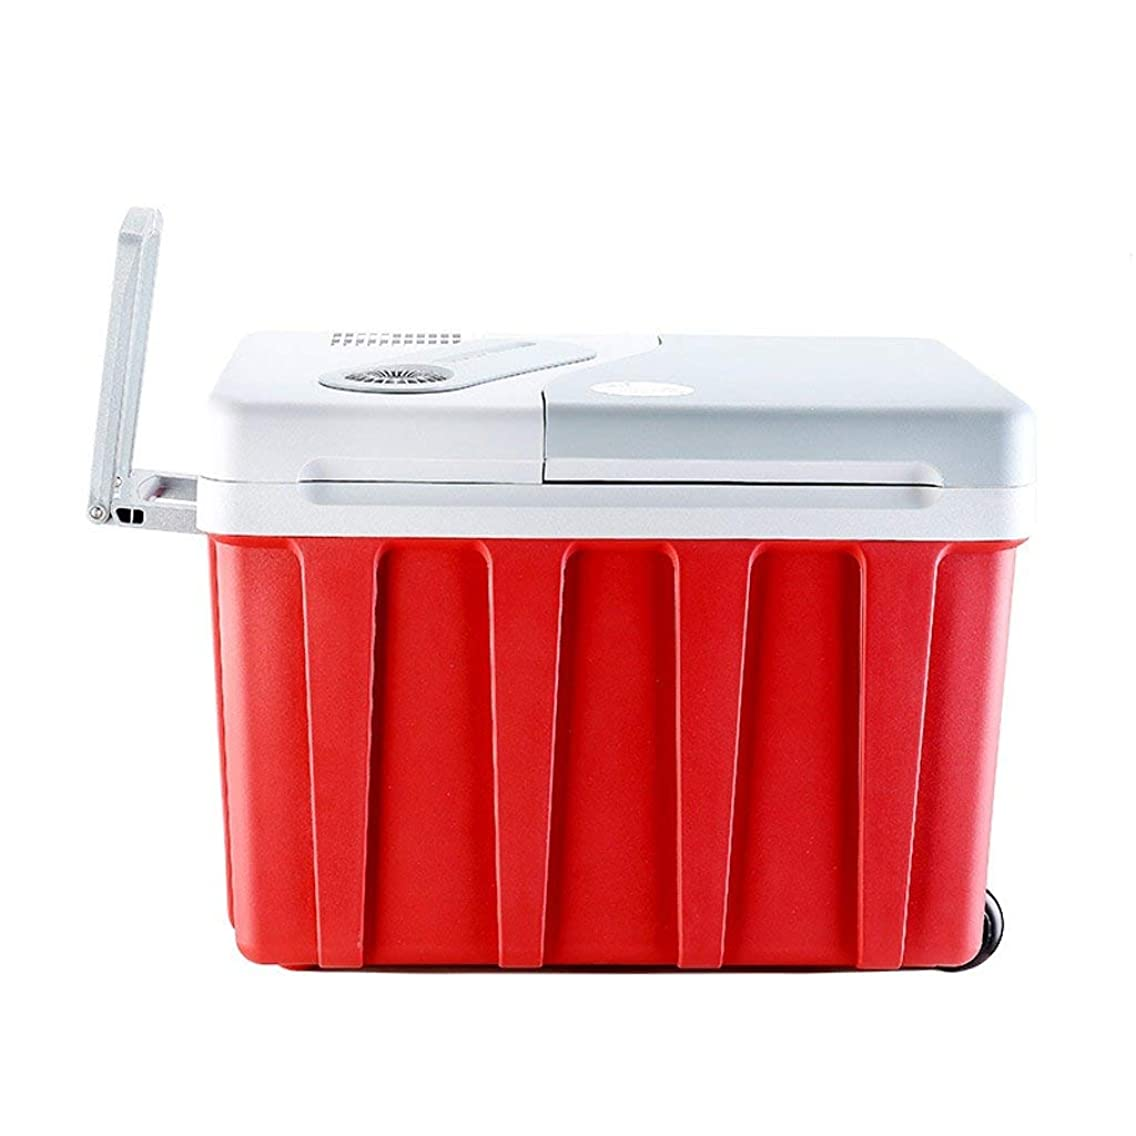 MOM Car Portable Refrigerator -40L Compact Refrigerator Holds 60 X 330Ml Cans |(Red)